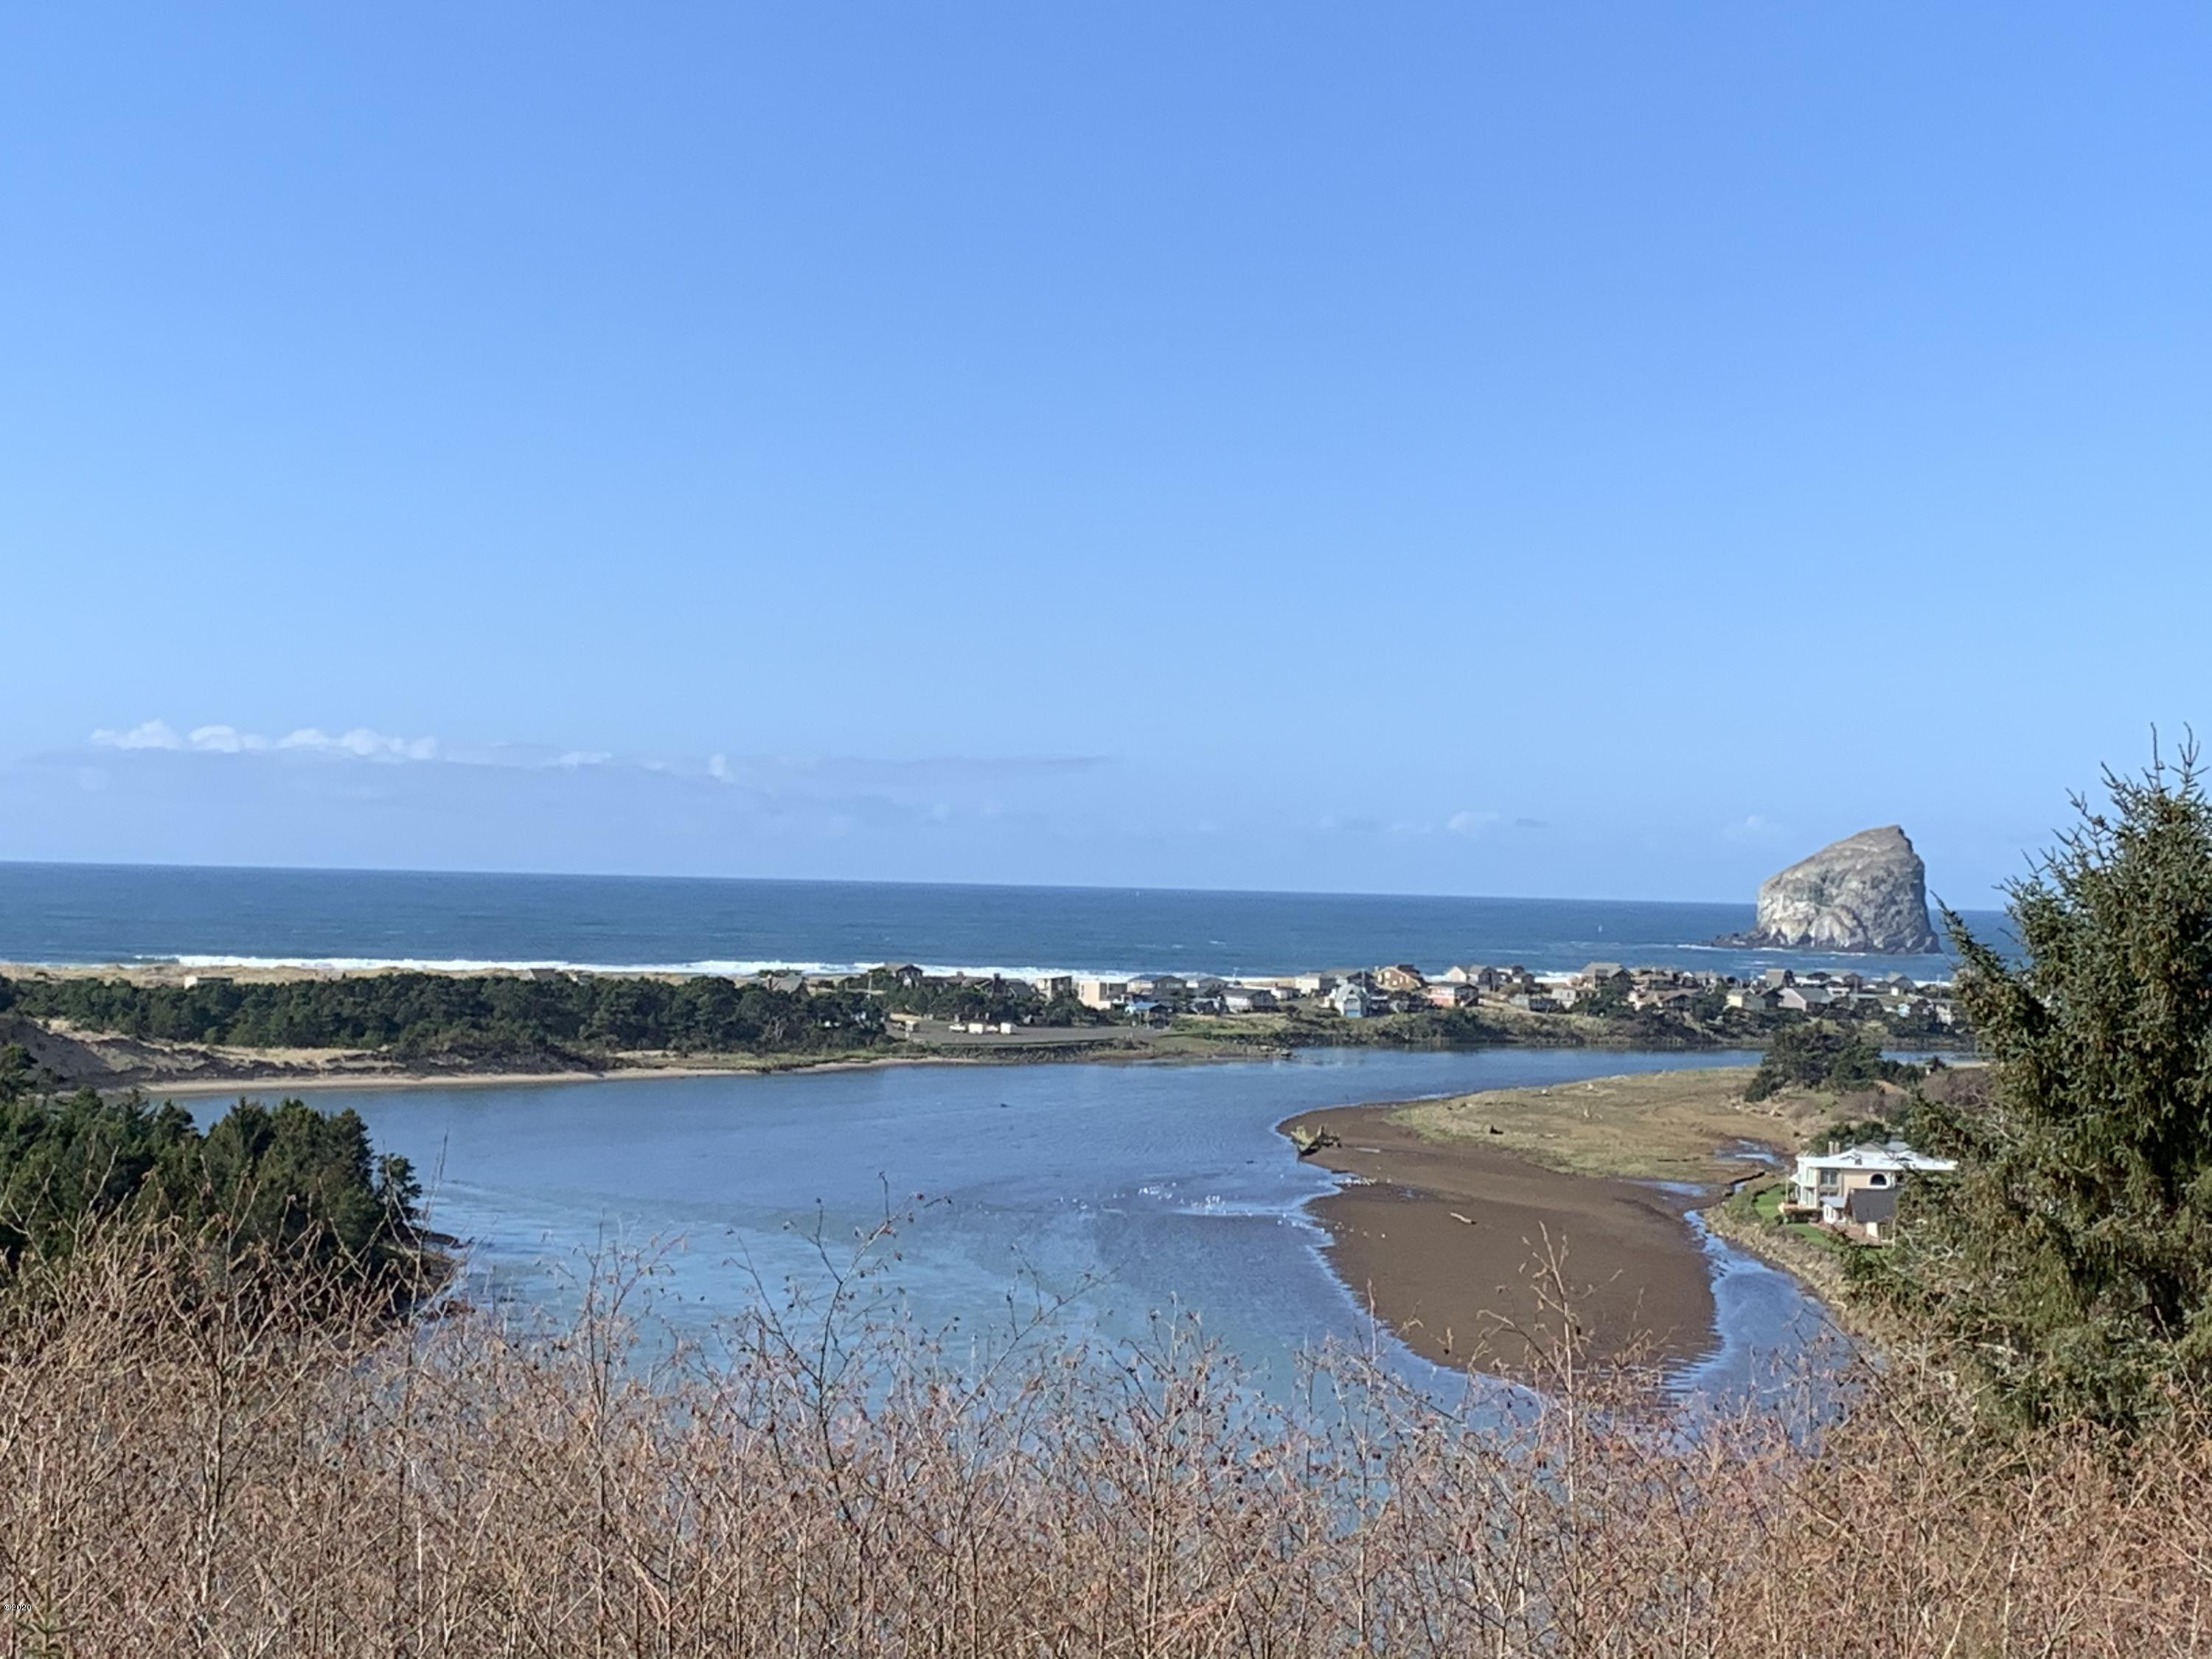 LOT 60 Kingfisher Loop, Pacific City, OR 97135 - Lot 60